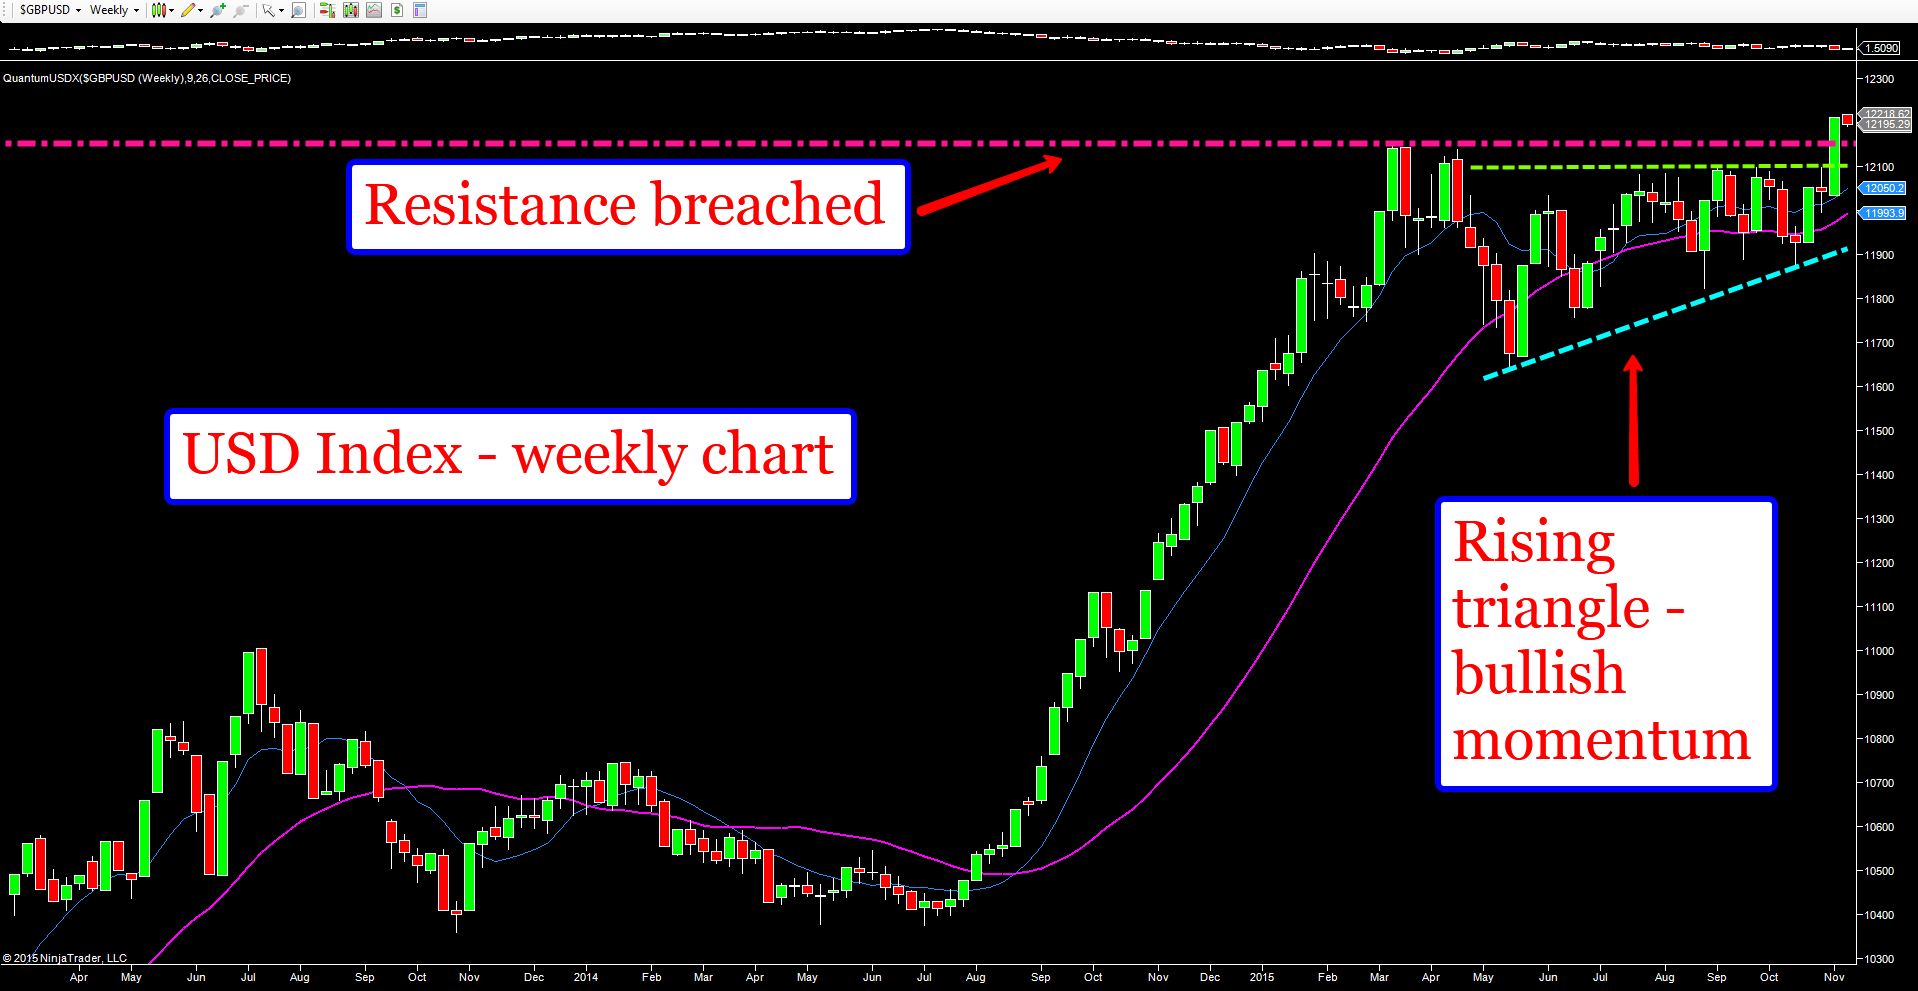 USDX_weekly_chart_annotated